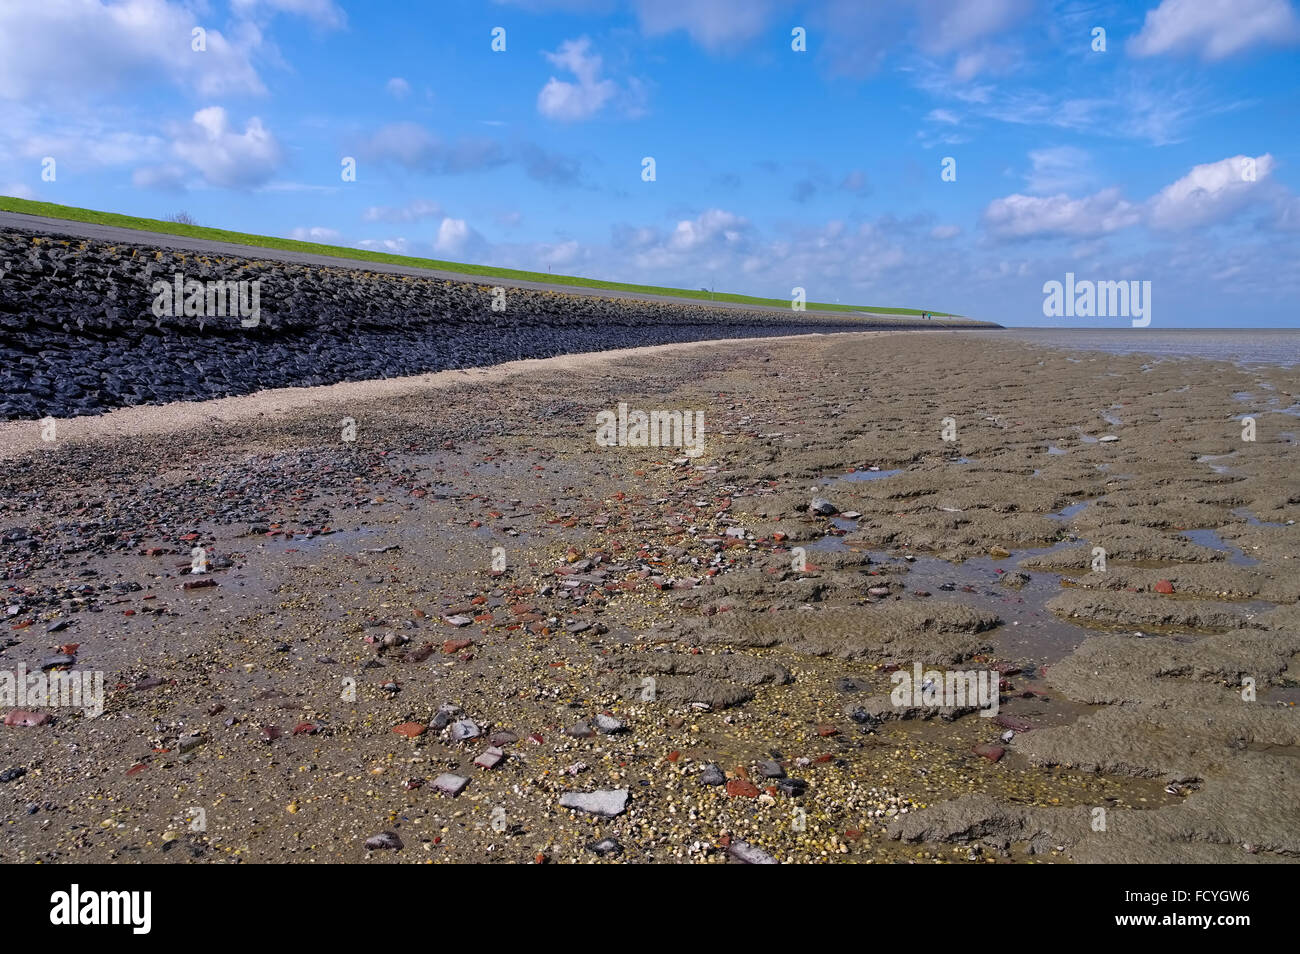 Wattenmeer in Ostfriesland - Mudflat in East Frisia, North Sea - Stock Image